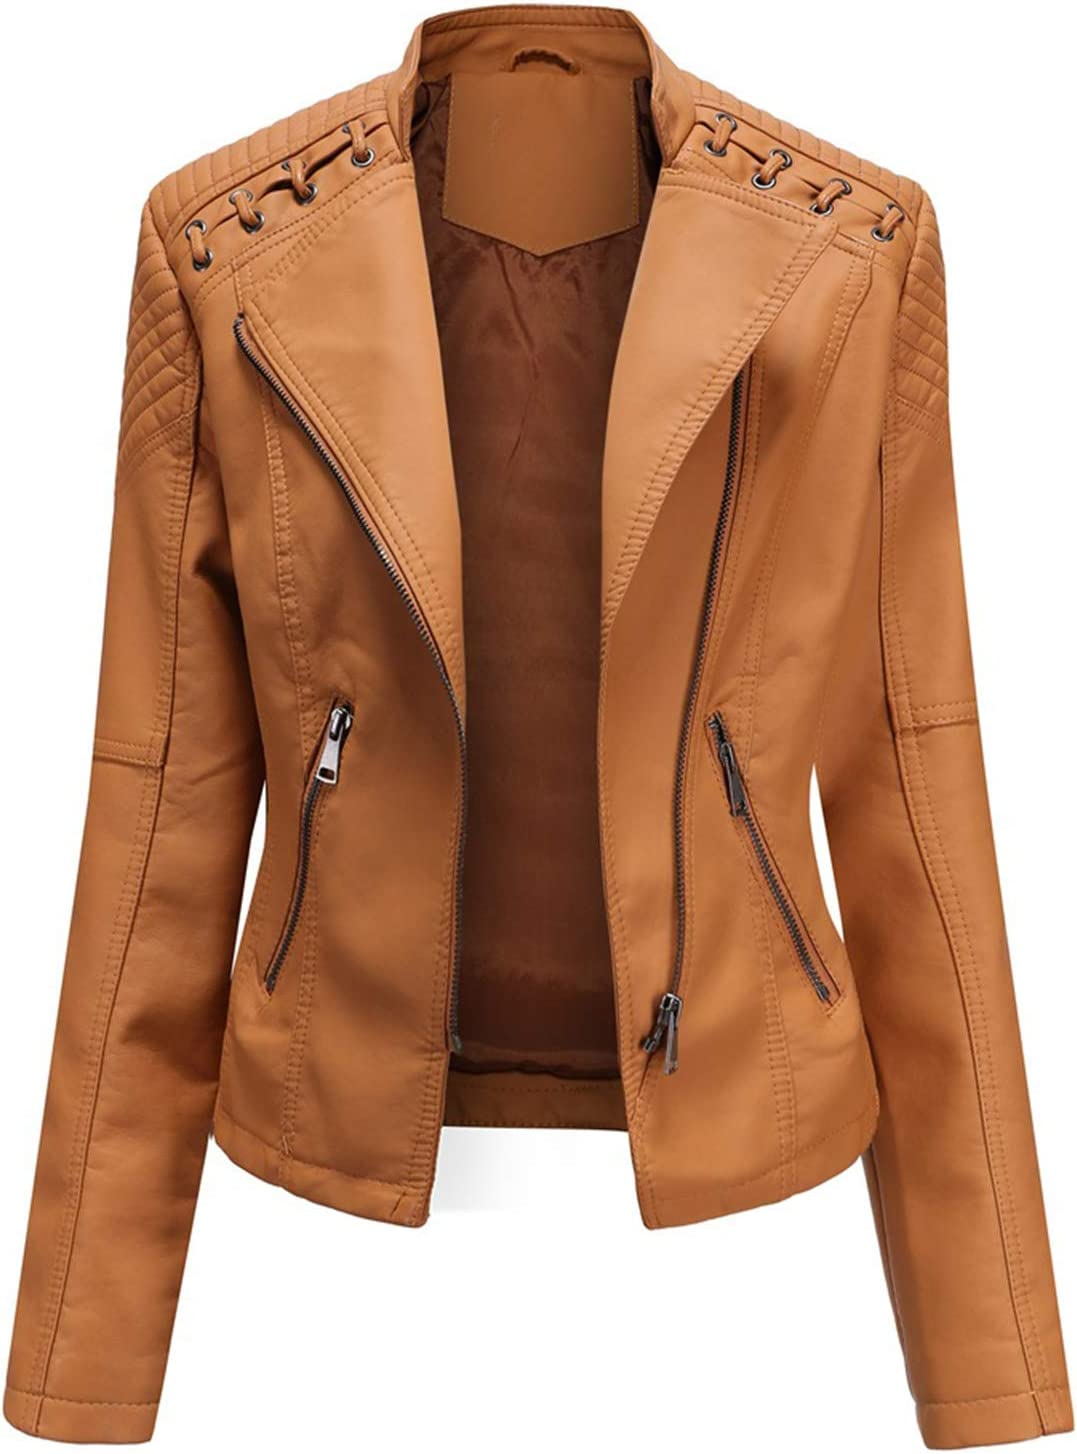 WEIXINMWP Fashion Leather Jacket Women Spring and Autumn Stand Collar Collar Motorcycle Rider Coat pu Jacket Coat high Street Jacket Street Clothing,Camel,M